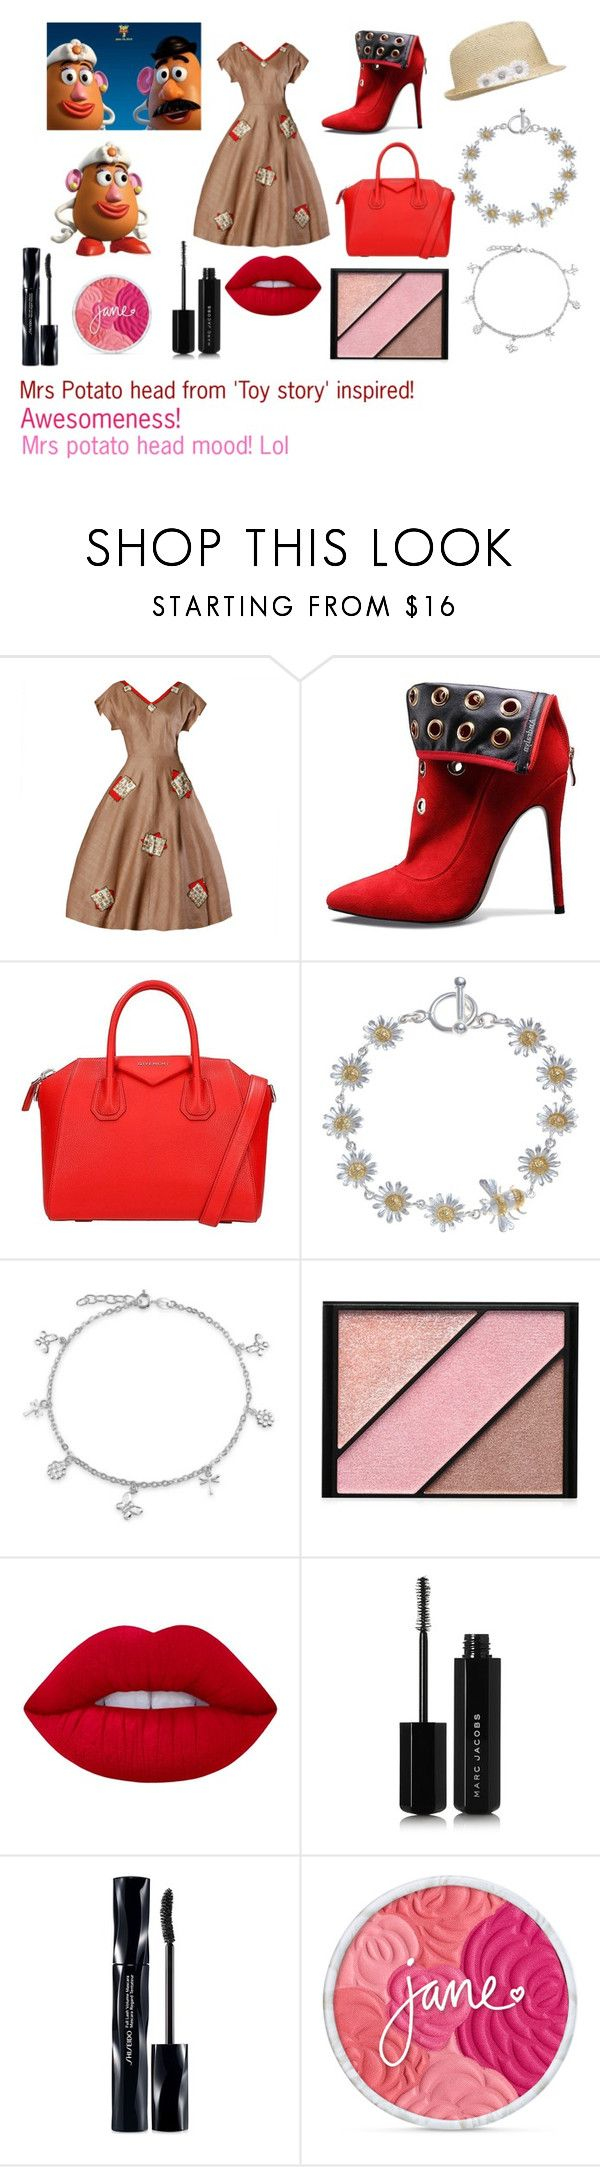 """For Scarlett (friend) - Scarlett's ideal wardrobe by me: Mrs potato head from 'Toy story' inspired!"" by sarah-m-smith ❤ liked on Polyvore featuring Givenchy, Martick, Bling Jewelry, Elizabeth Arden, Lime Crime, Marc Jacobs, Shiseido and plus size dresses"